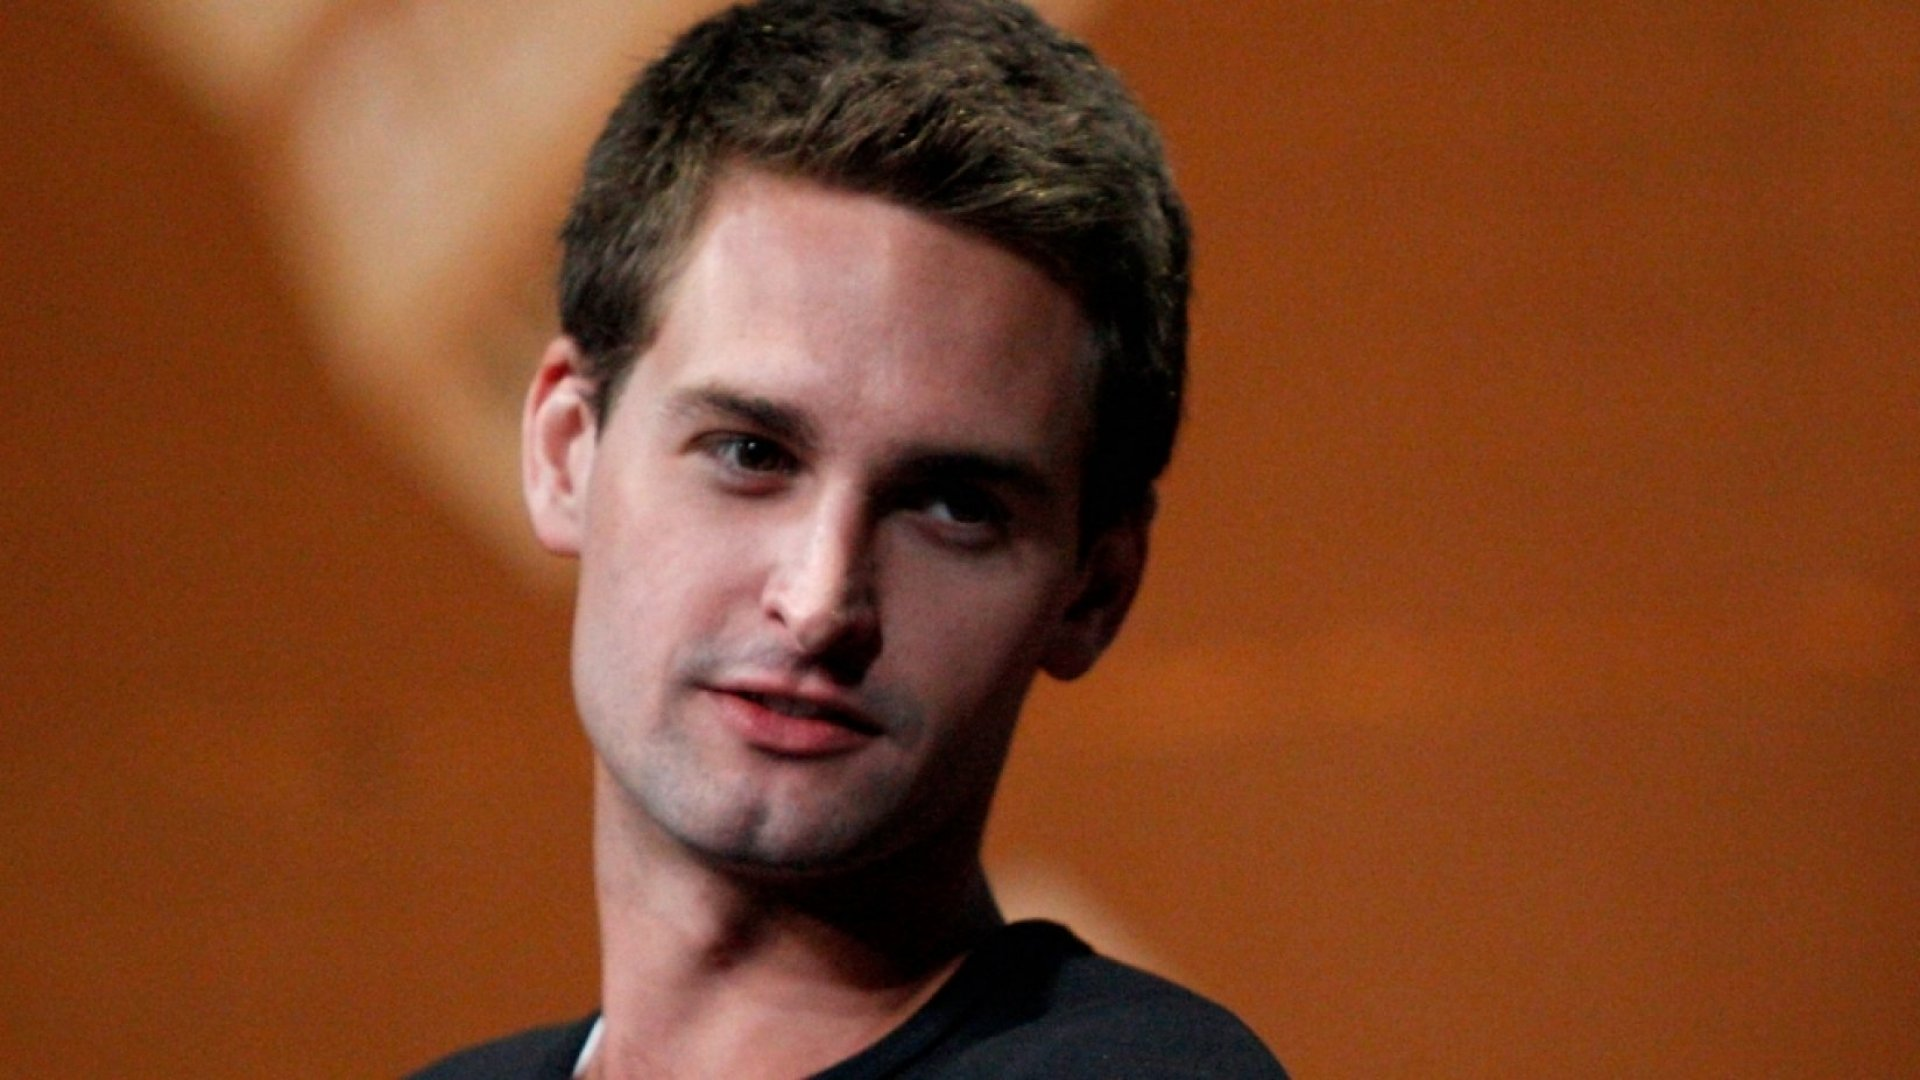 Evan Spiegel Was Likely the Highest Paid U.S. CEO in 2017, but His Company Lost $720 Million